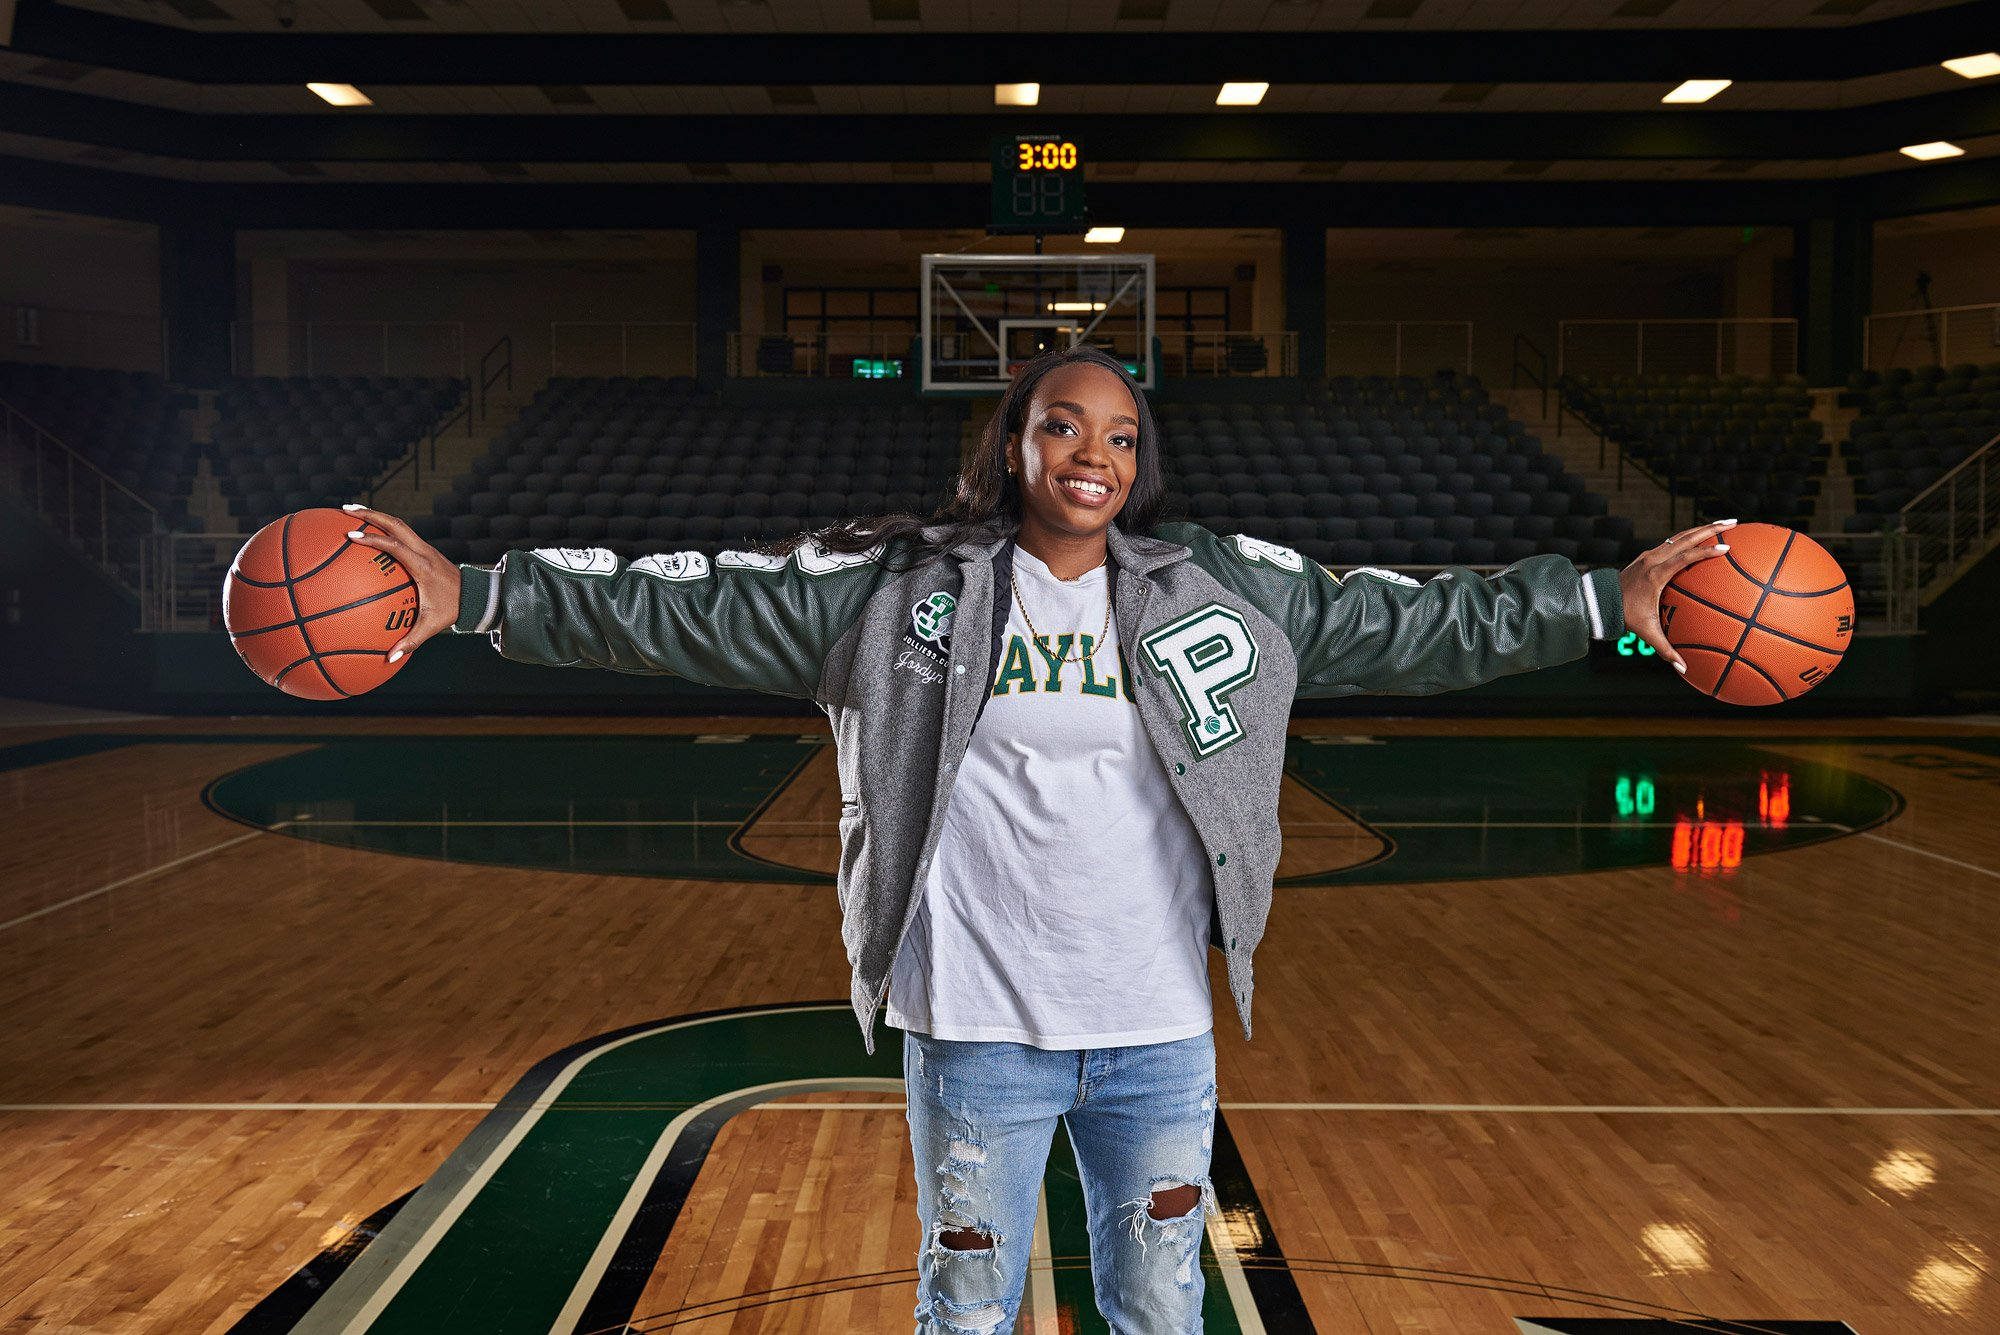 Jordyn Oliver palms two balls like MJ for basketball senior portraits at prosper tx